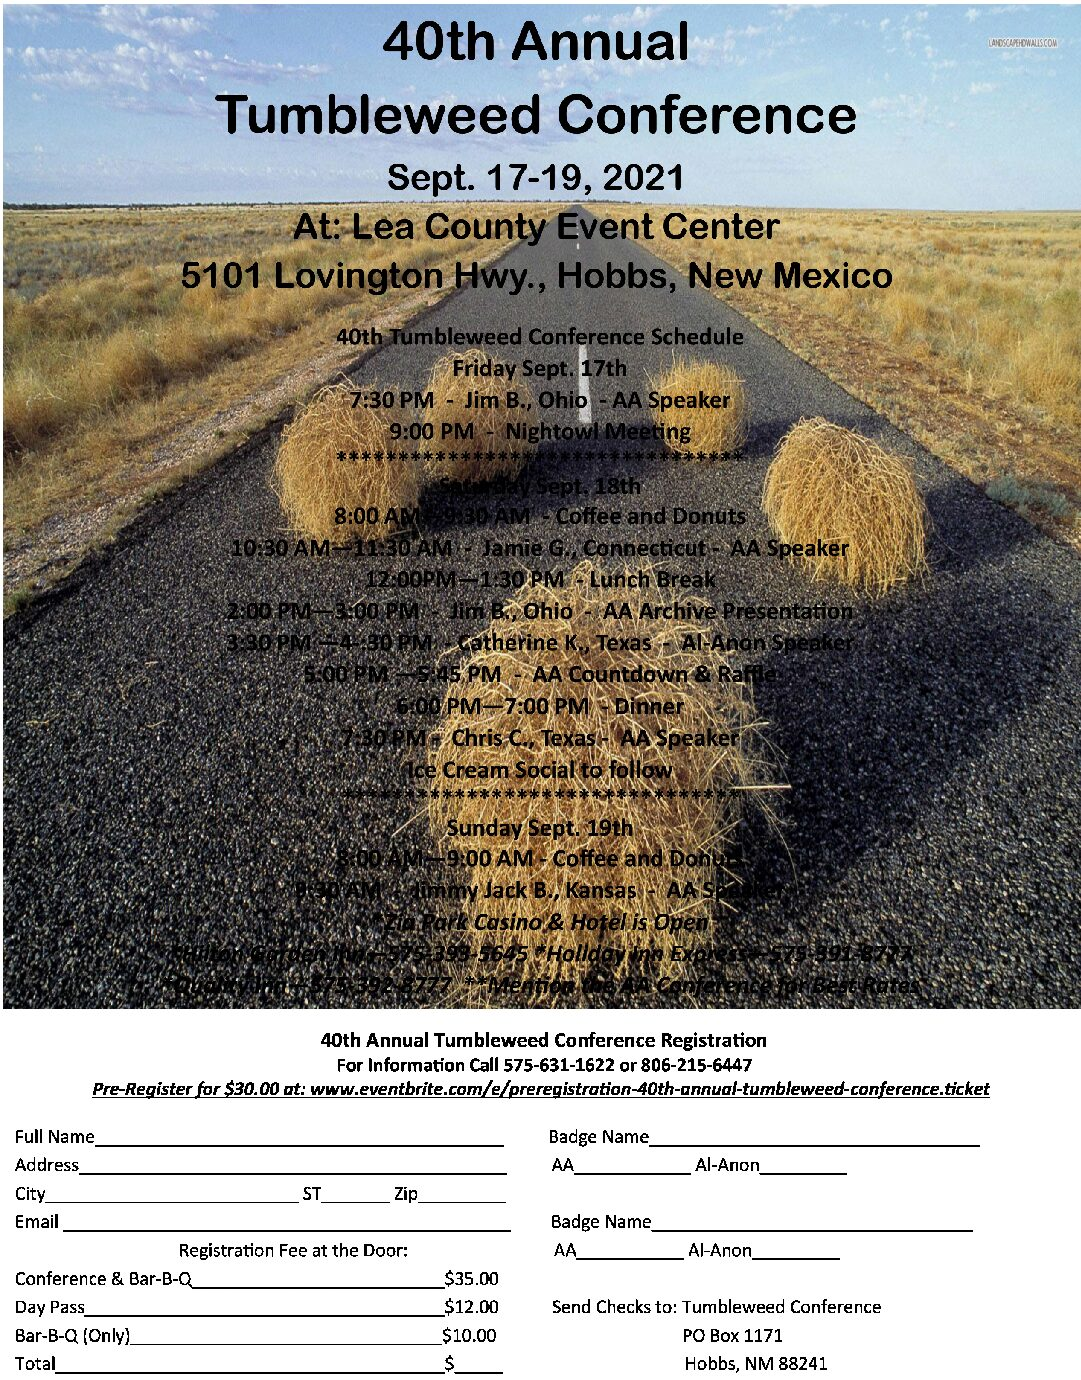 40th Annual Tumbleweed Conference